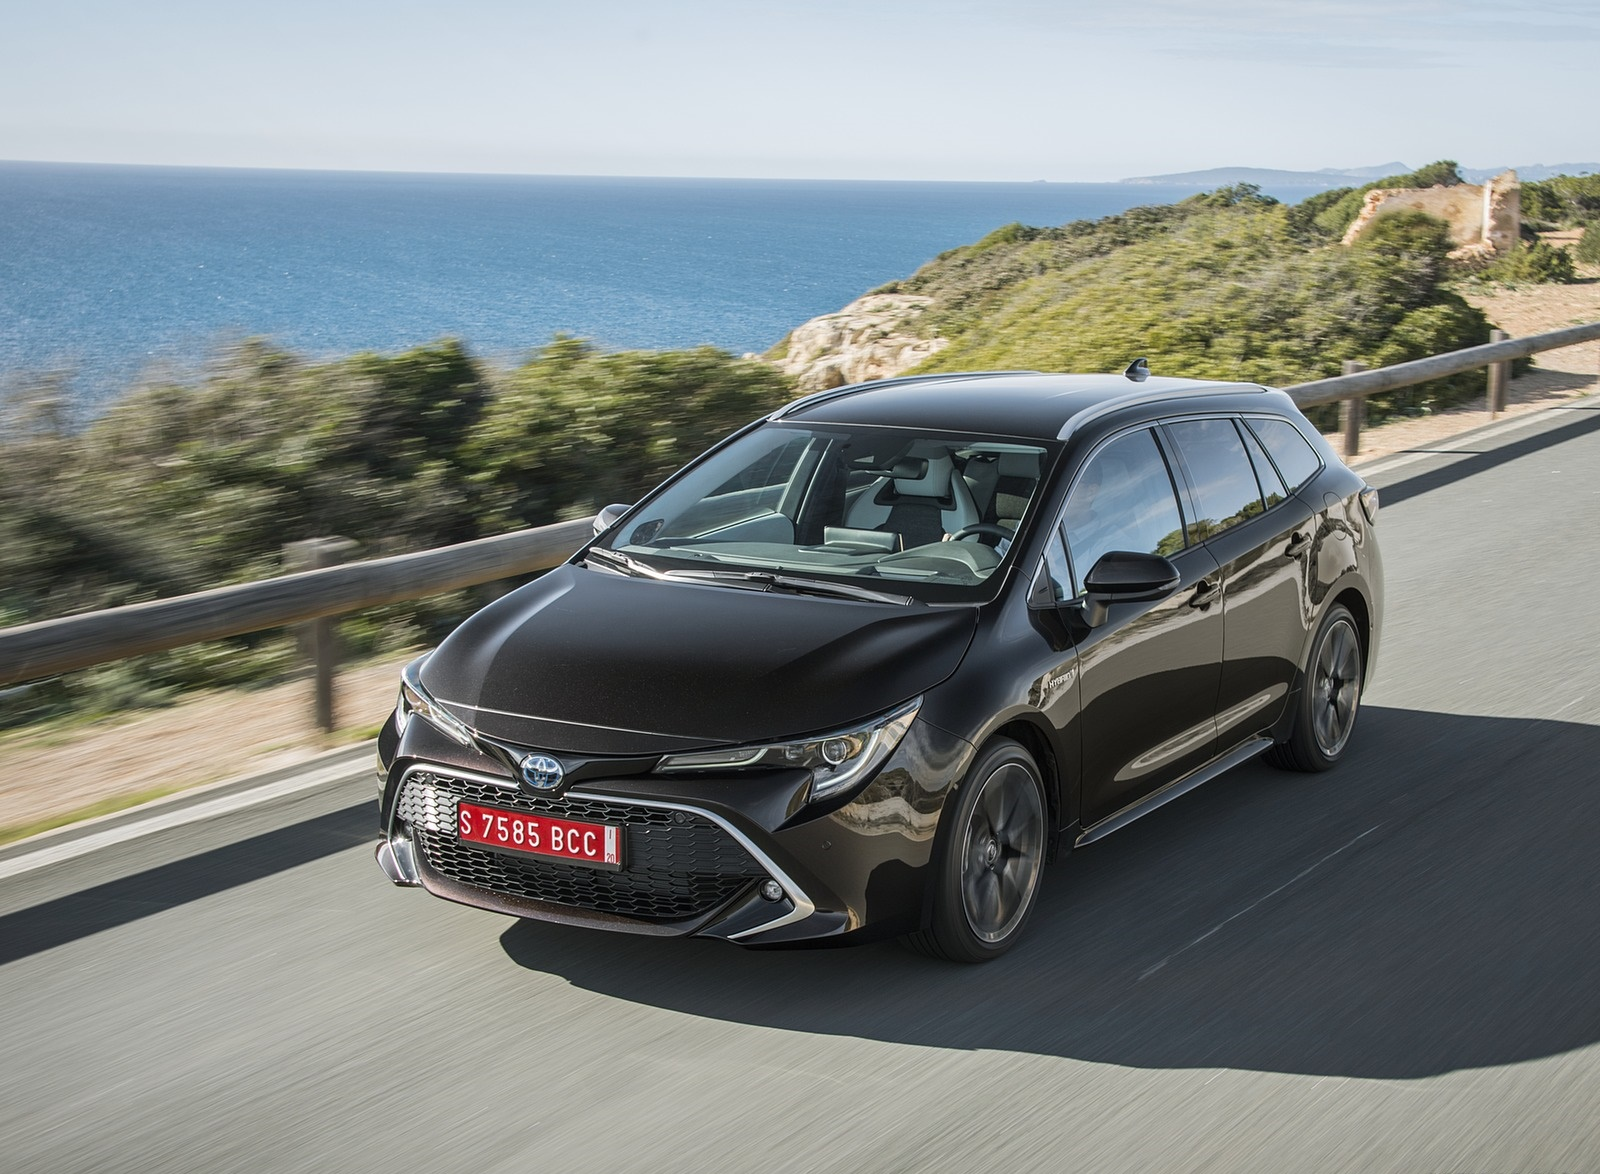 2019 Toyota Corolla Touring Sports 2.0L Brown (EU-Spec) Front Three-Quarter Wallpapers (1)